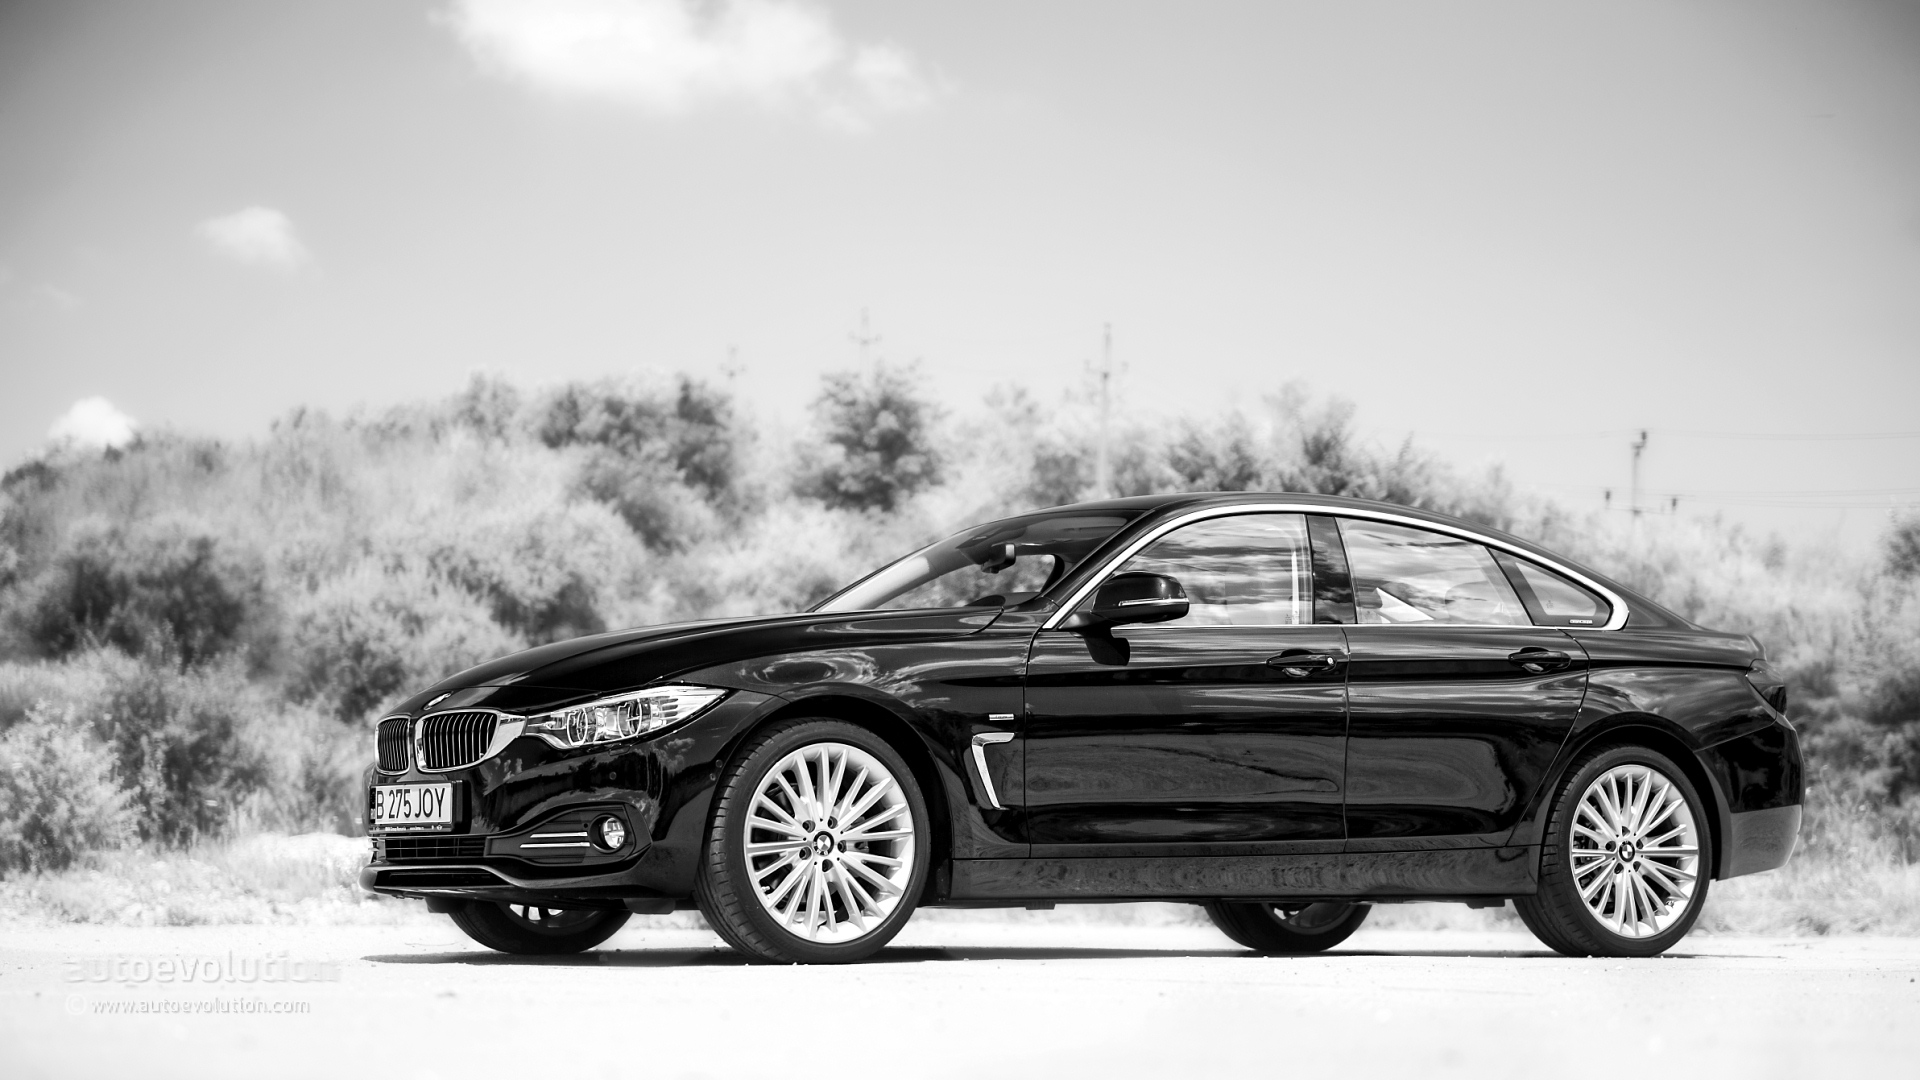 Bmw Of Little Rock >> BMW 4-Series Gran Coupe Review - autoevolution